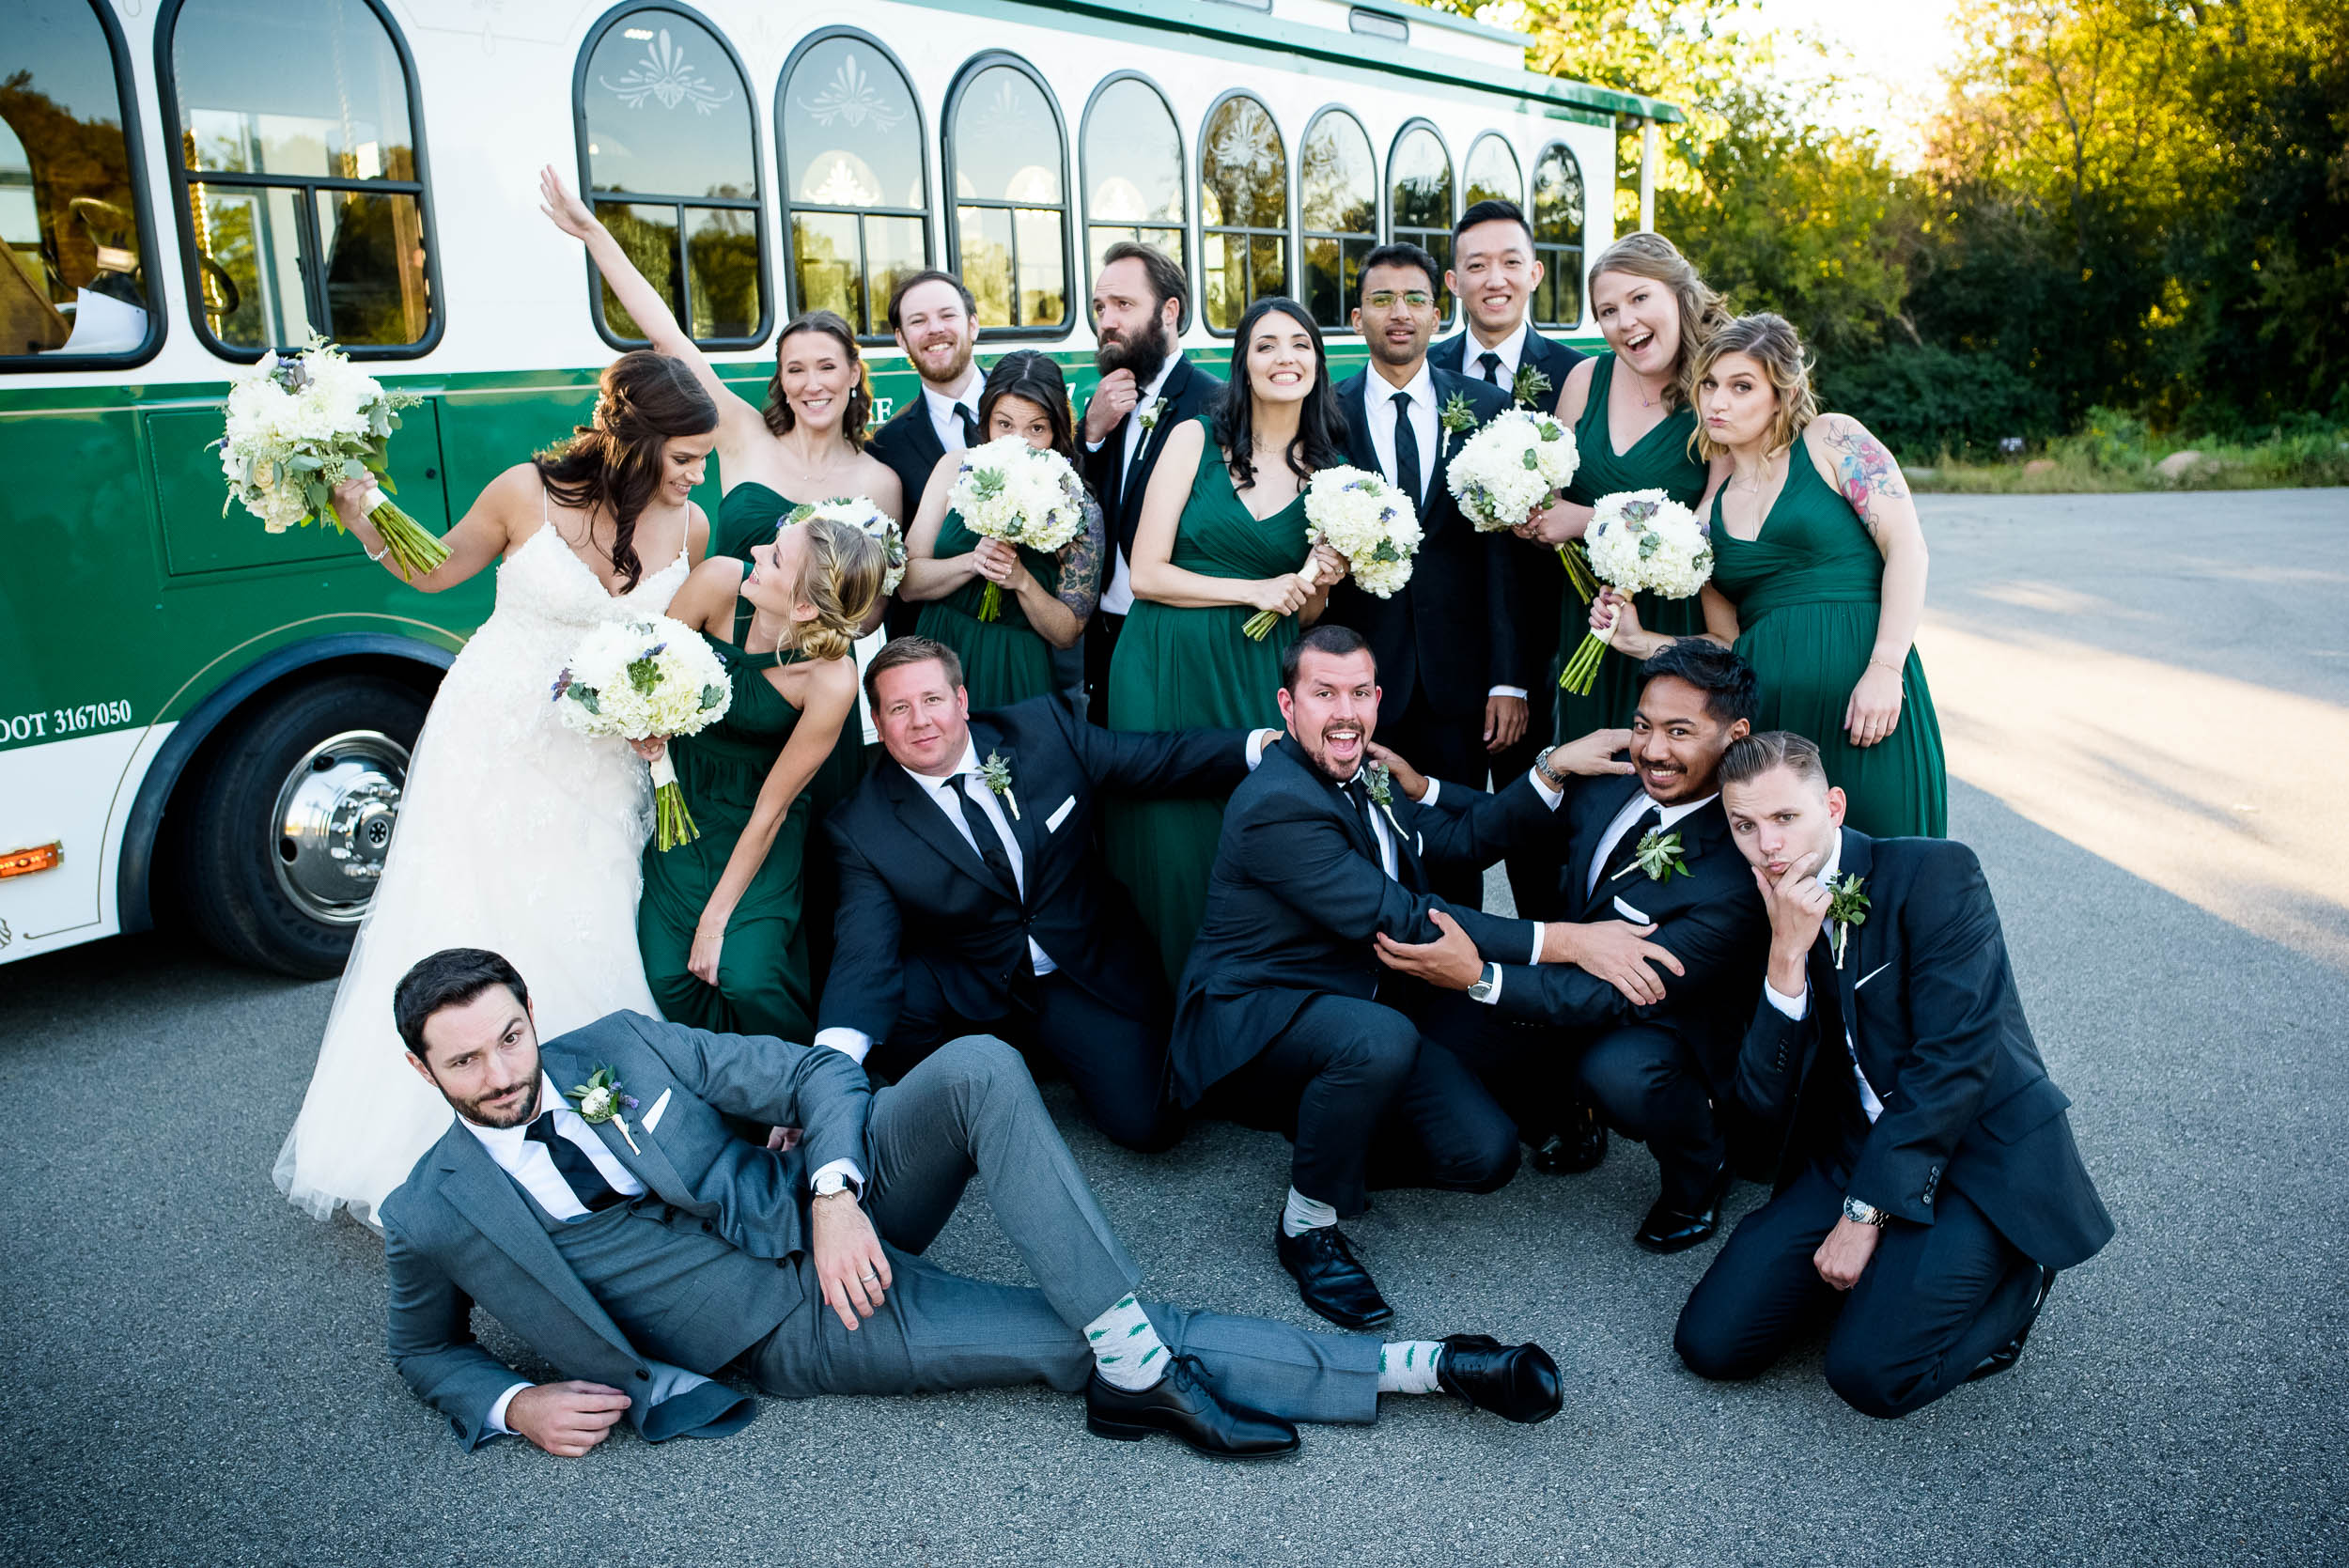 Fun wedding party photos at Grand Geneve Resort Fall Chicago Wedding captured by J. Brown Photography. Visit jbrownphotography.com for more wedding inspiration!